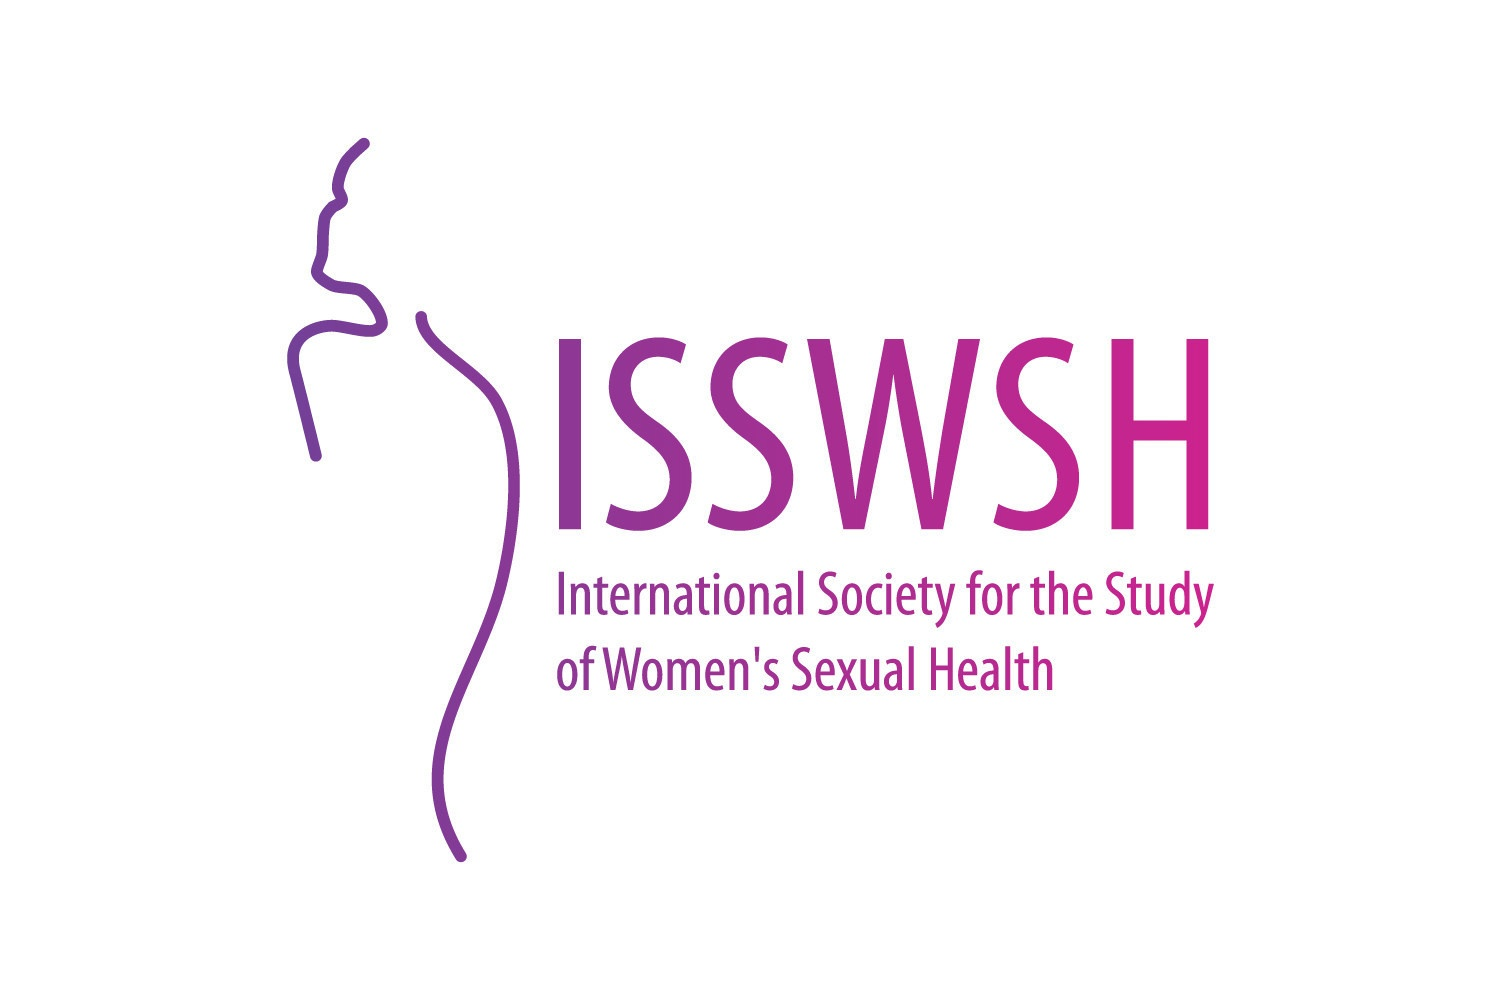 international society for the study of women's sexual health logo